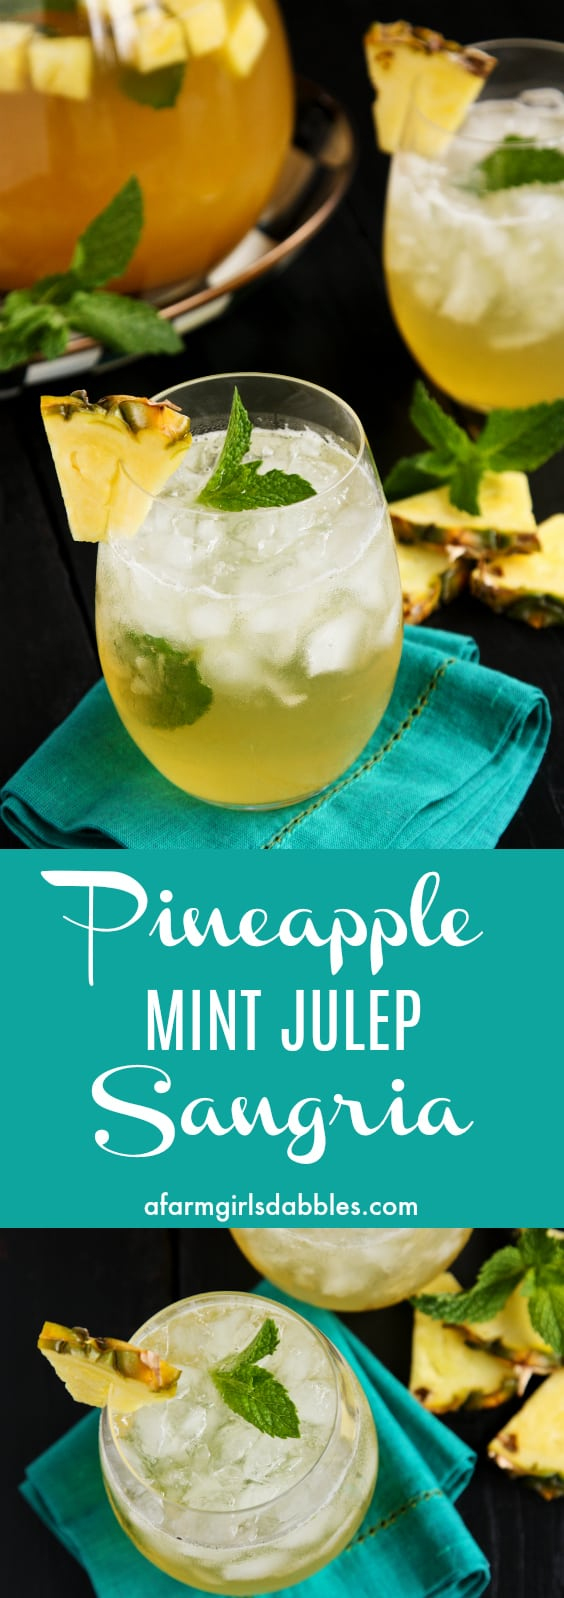 Pineapple Mint Julep Sangria from afarmgirlsdabbles.com - A fun twist on the traditional mint julep beverage served at the Kentucky Derbyeach spring, and perfectly refreshing all summer long - pineapple juice, fresh mint, crisp white wine, and a splash of Bourbon make a refreshing cocktail!